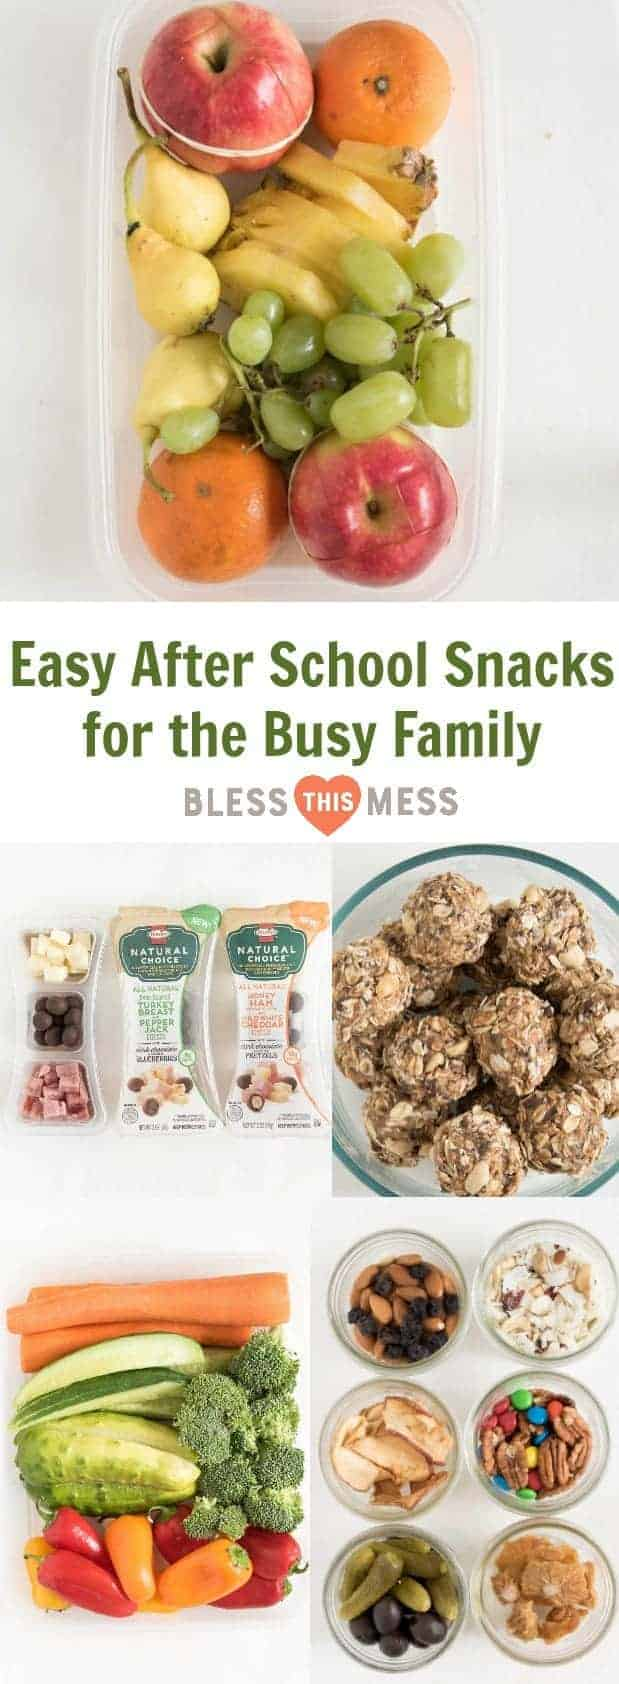 Easy After School Snacks for the Busy Family